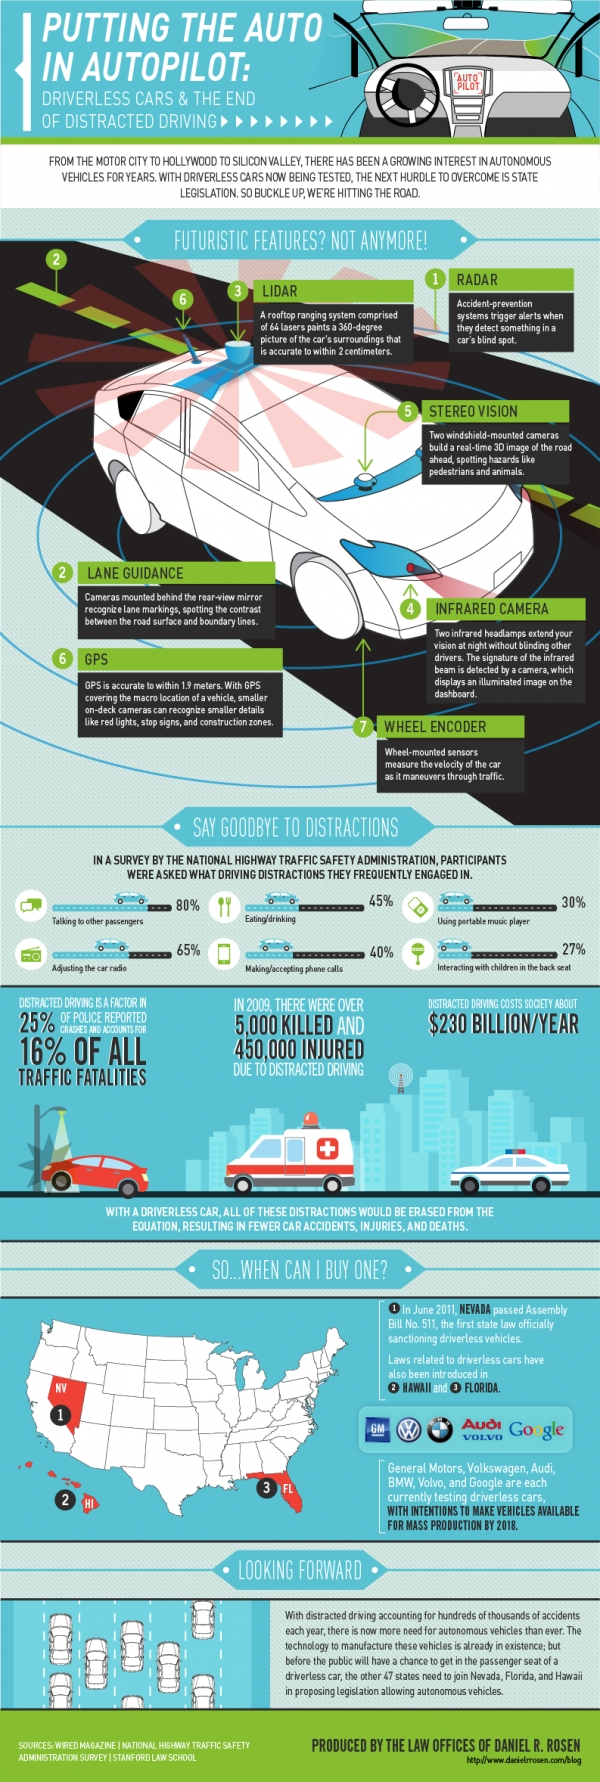 driverless-car-infographic